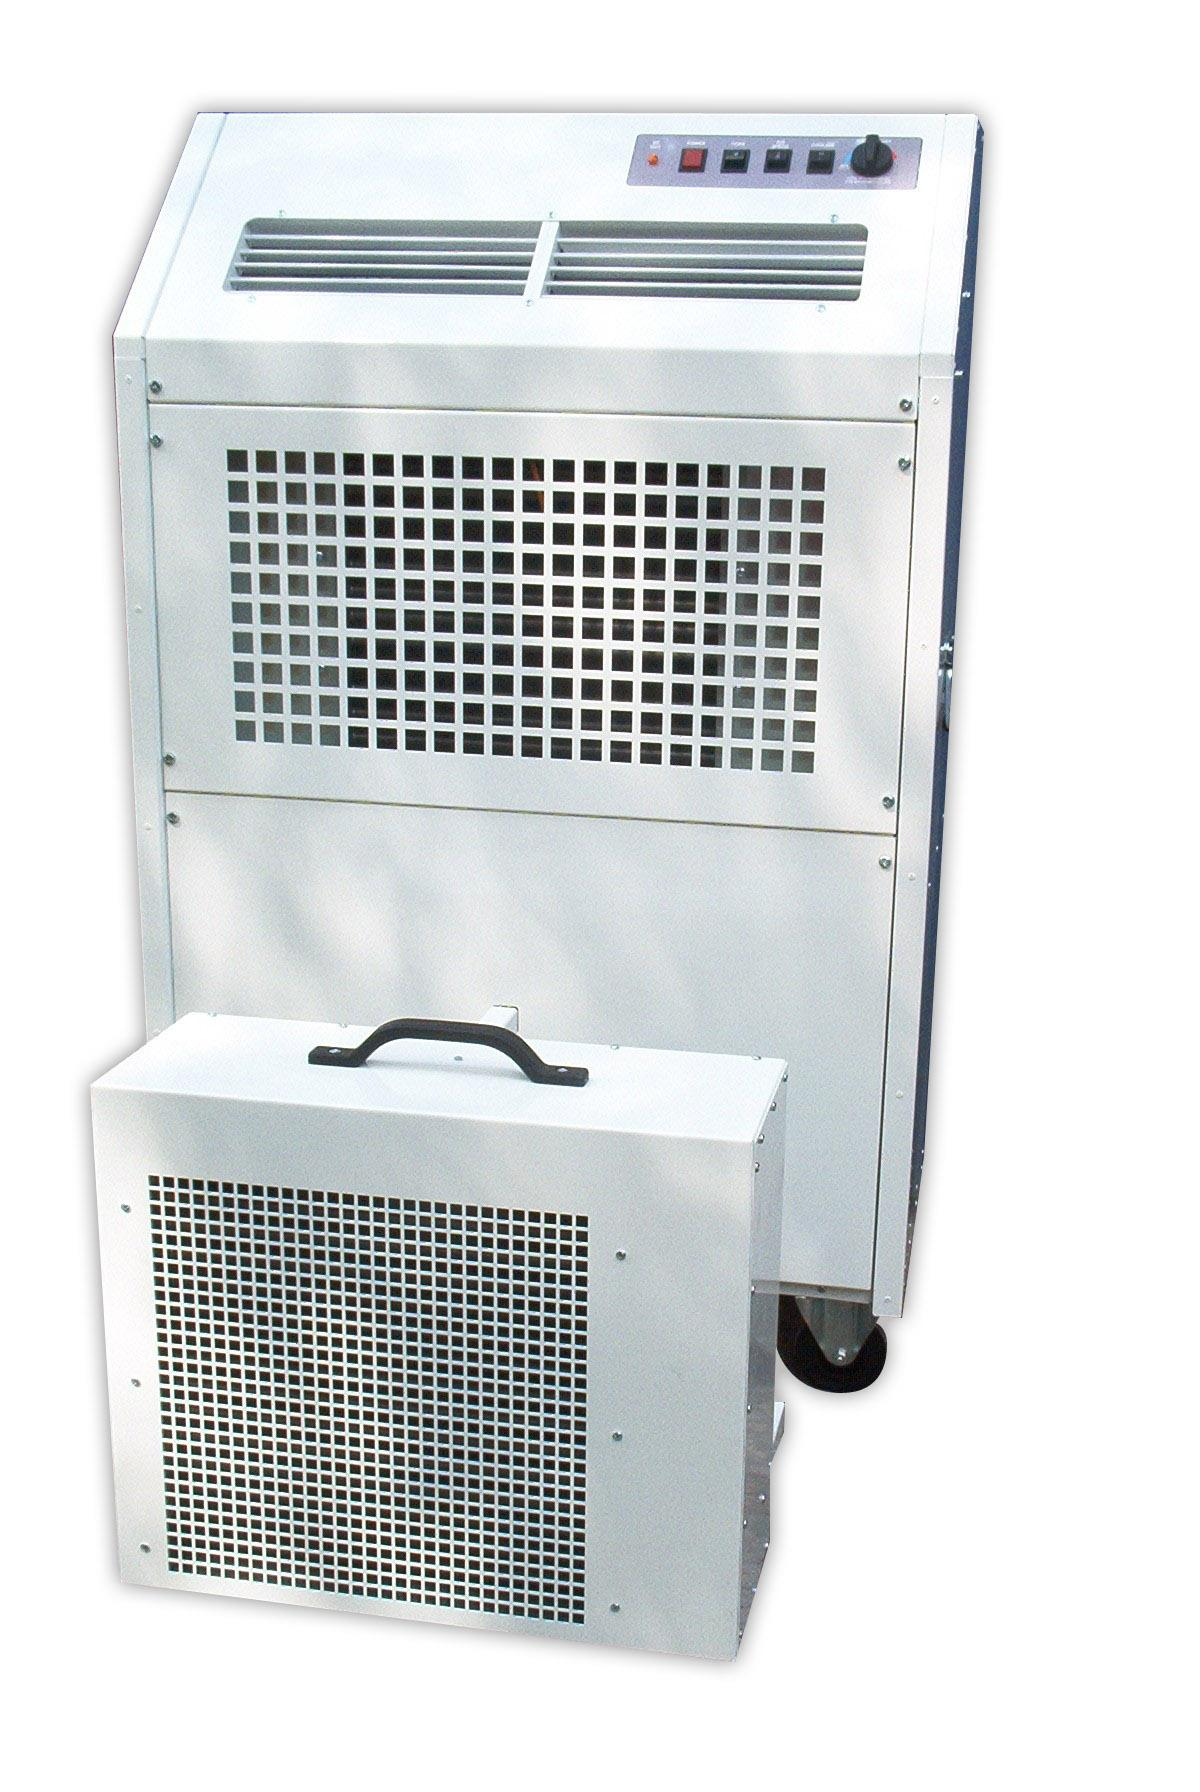 #3D4B5F Brolin BR25SP 7.3kw 25 000btu Water Cooled Split Portable  Most Recent 14190 Split Level Air Conditioning Systems image with 1200x1792 px on helpvideos.info - Air Conditioners, Air Coolers and more